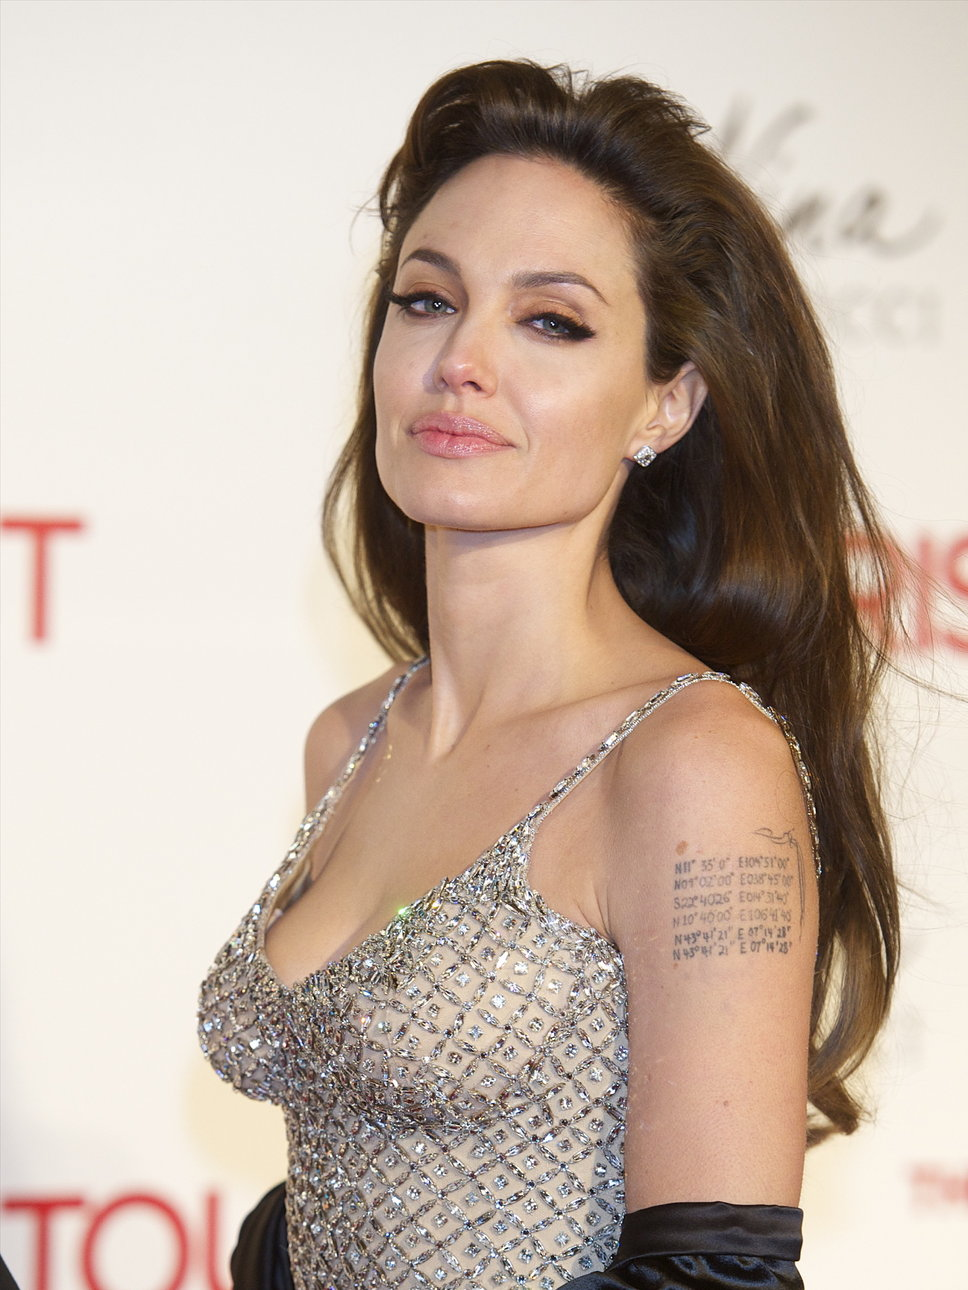 angelina jolie hot wallpaper ~ my celebrity trends center